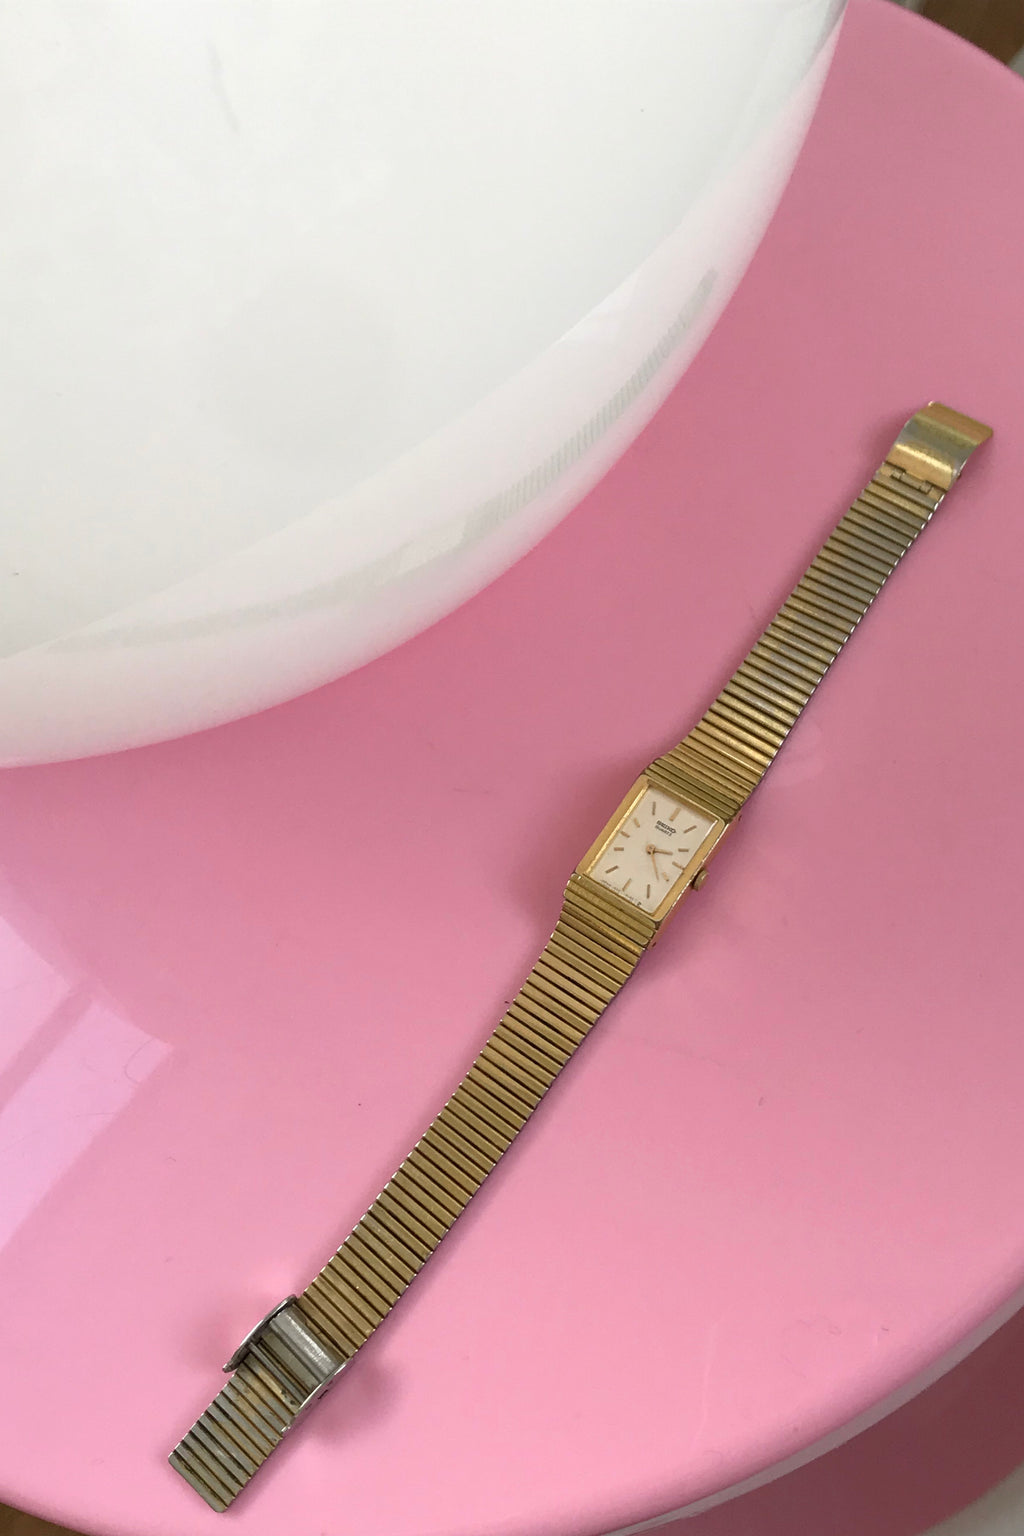 Vintage 1970s Gold Tone Ladies Wrist Watch By Seiko